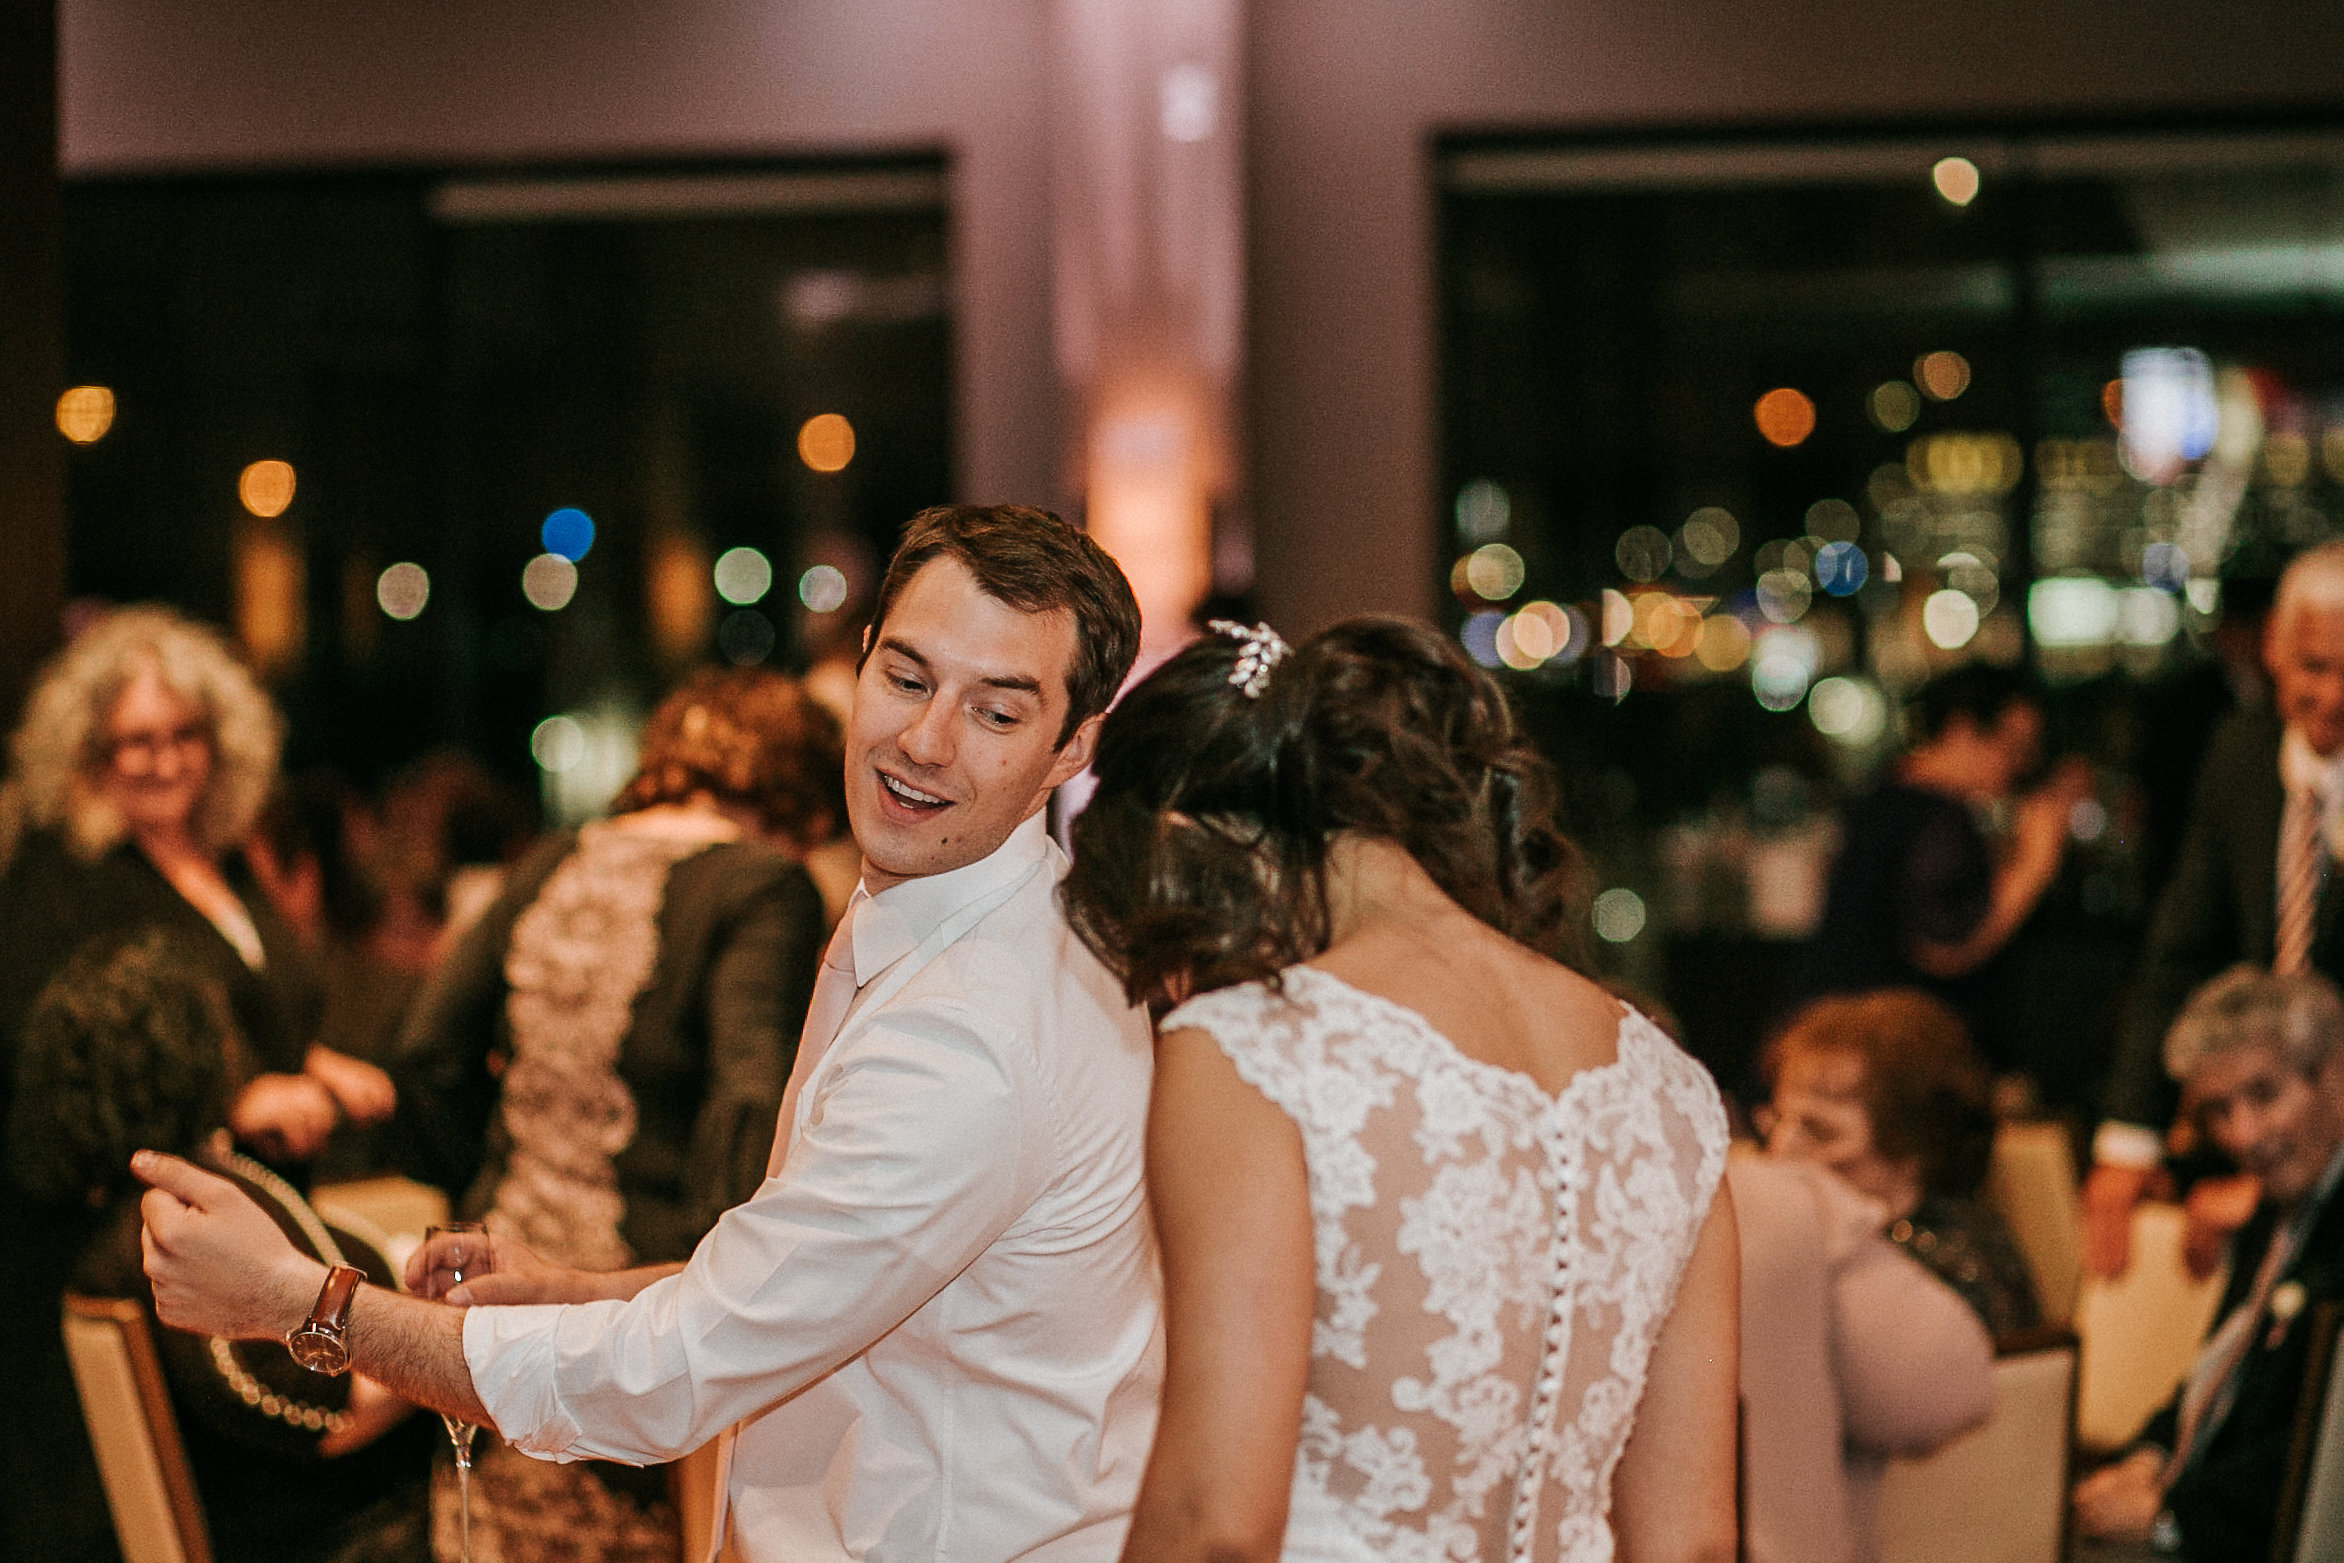 Groom and bride dancing at reception